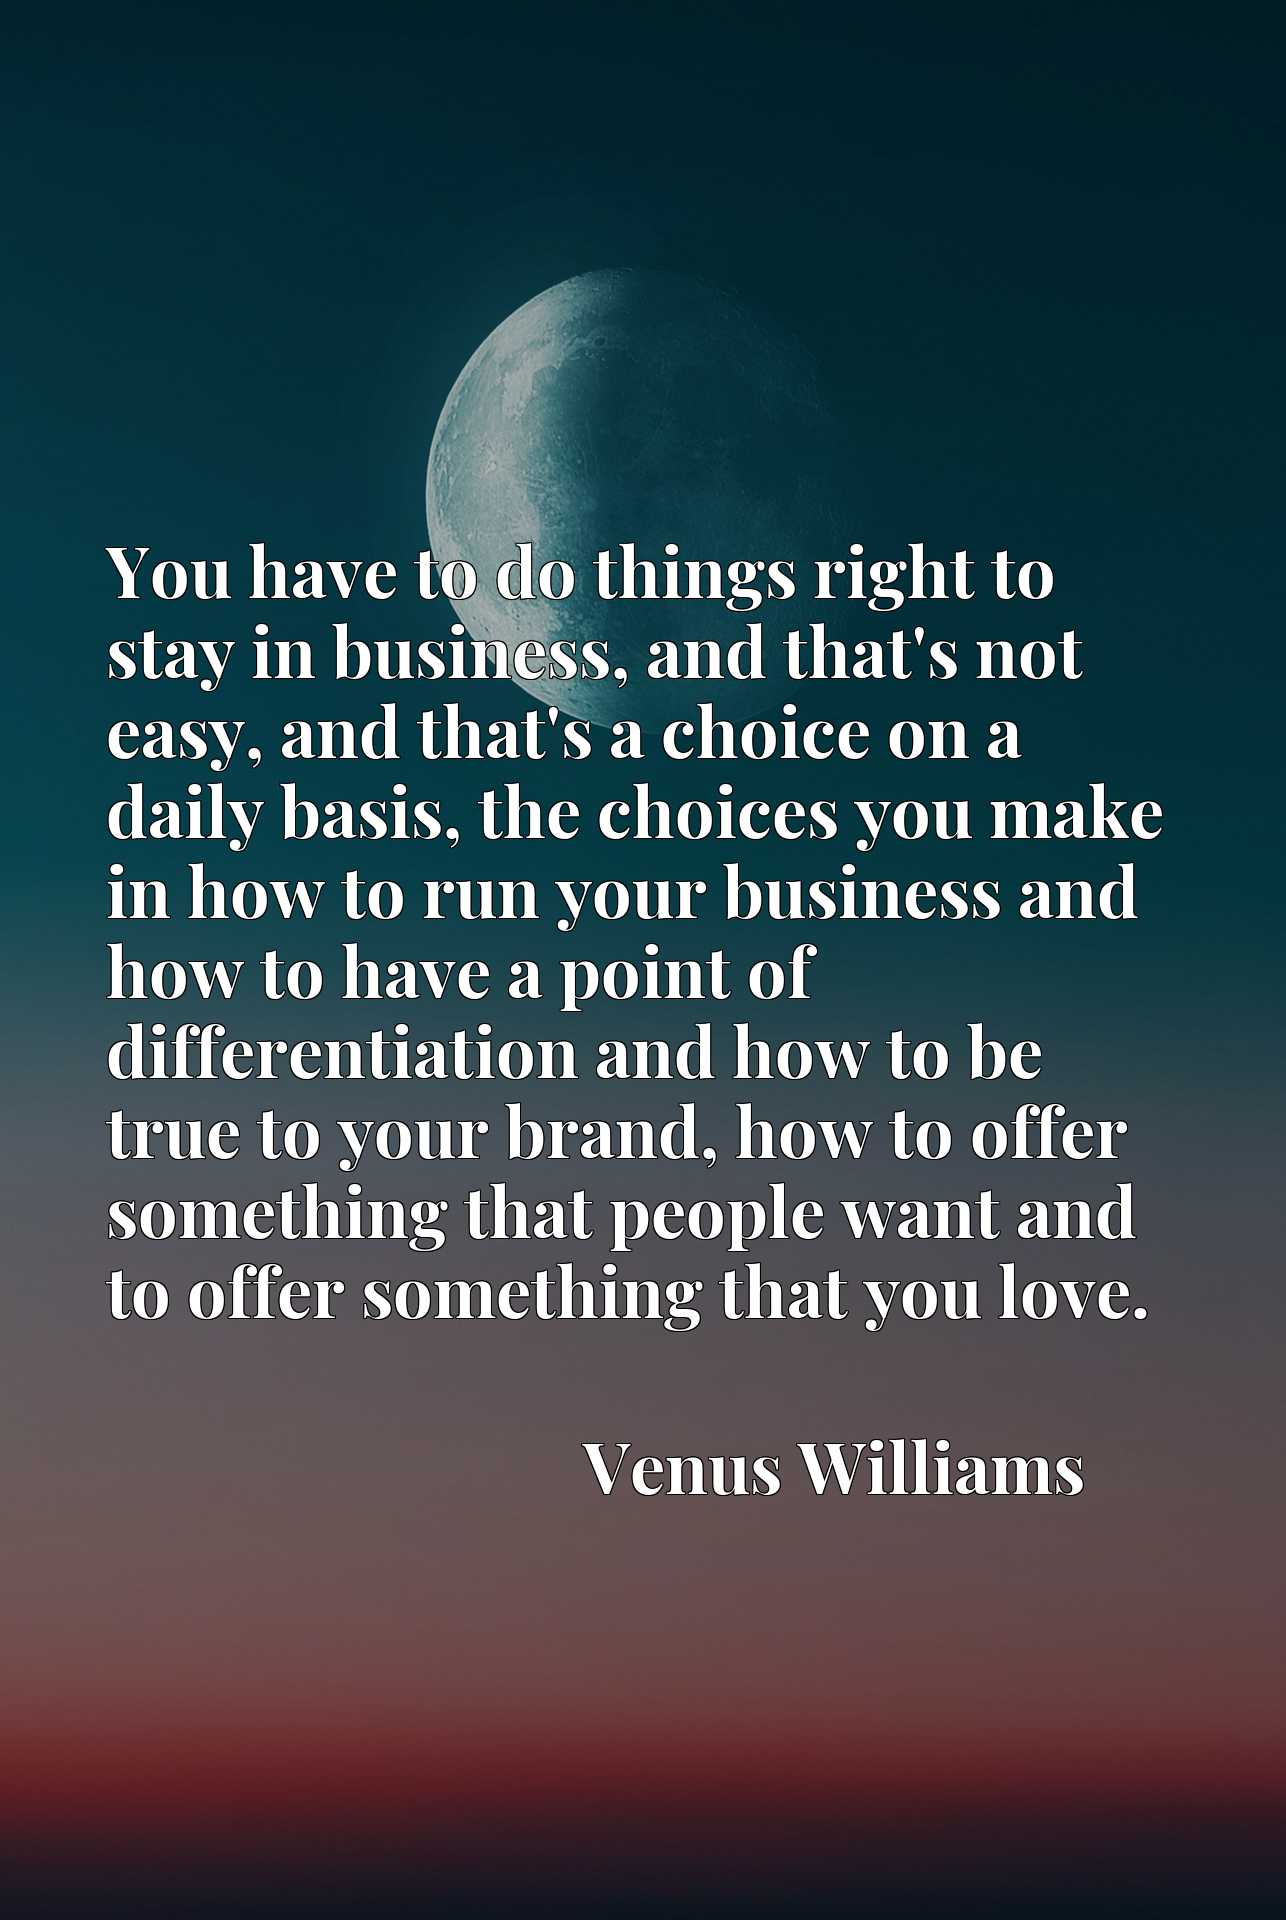 You have to do things right to stay in business, and that's not easy, and that's a choice on a daily basis, the choices you make in how to run your business and how to have a point of differentiation and how to be true to your brand, how to offer something that people want and to offer something that you love.